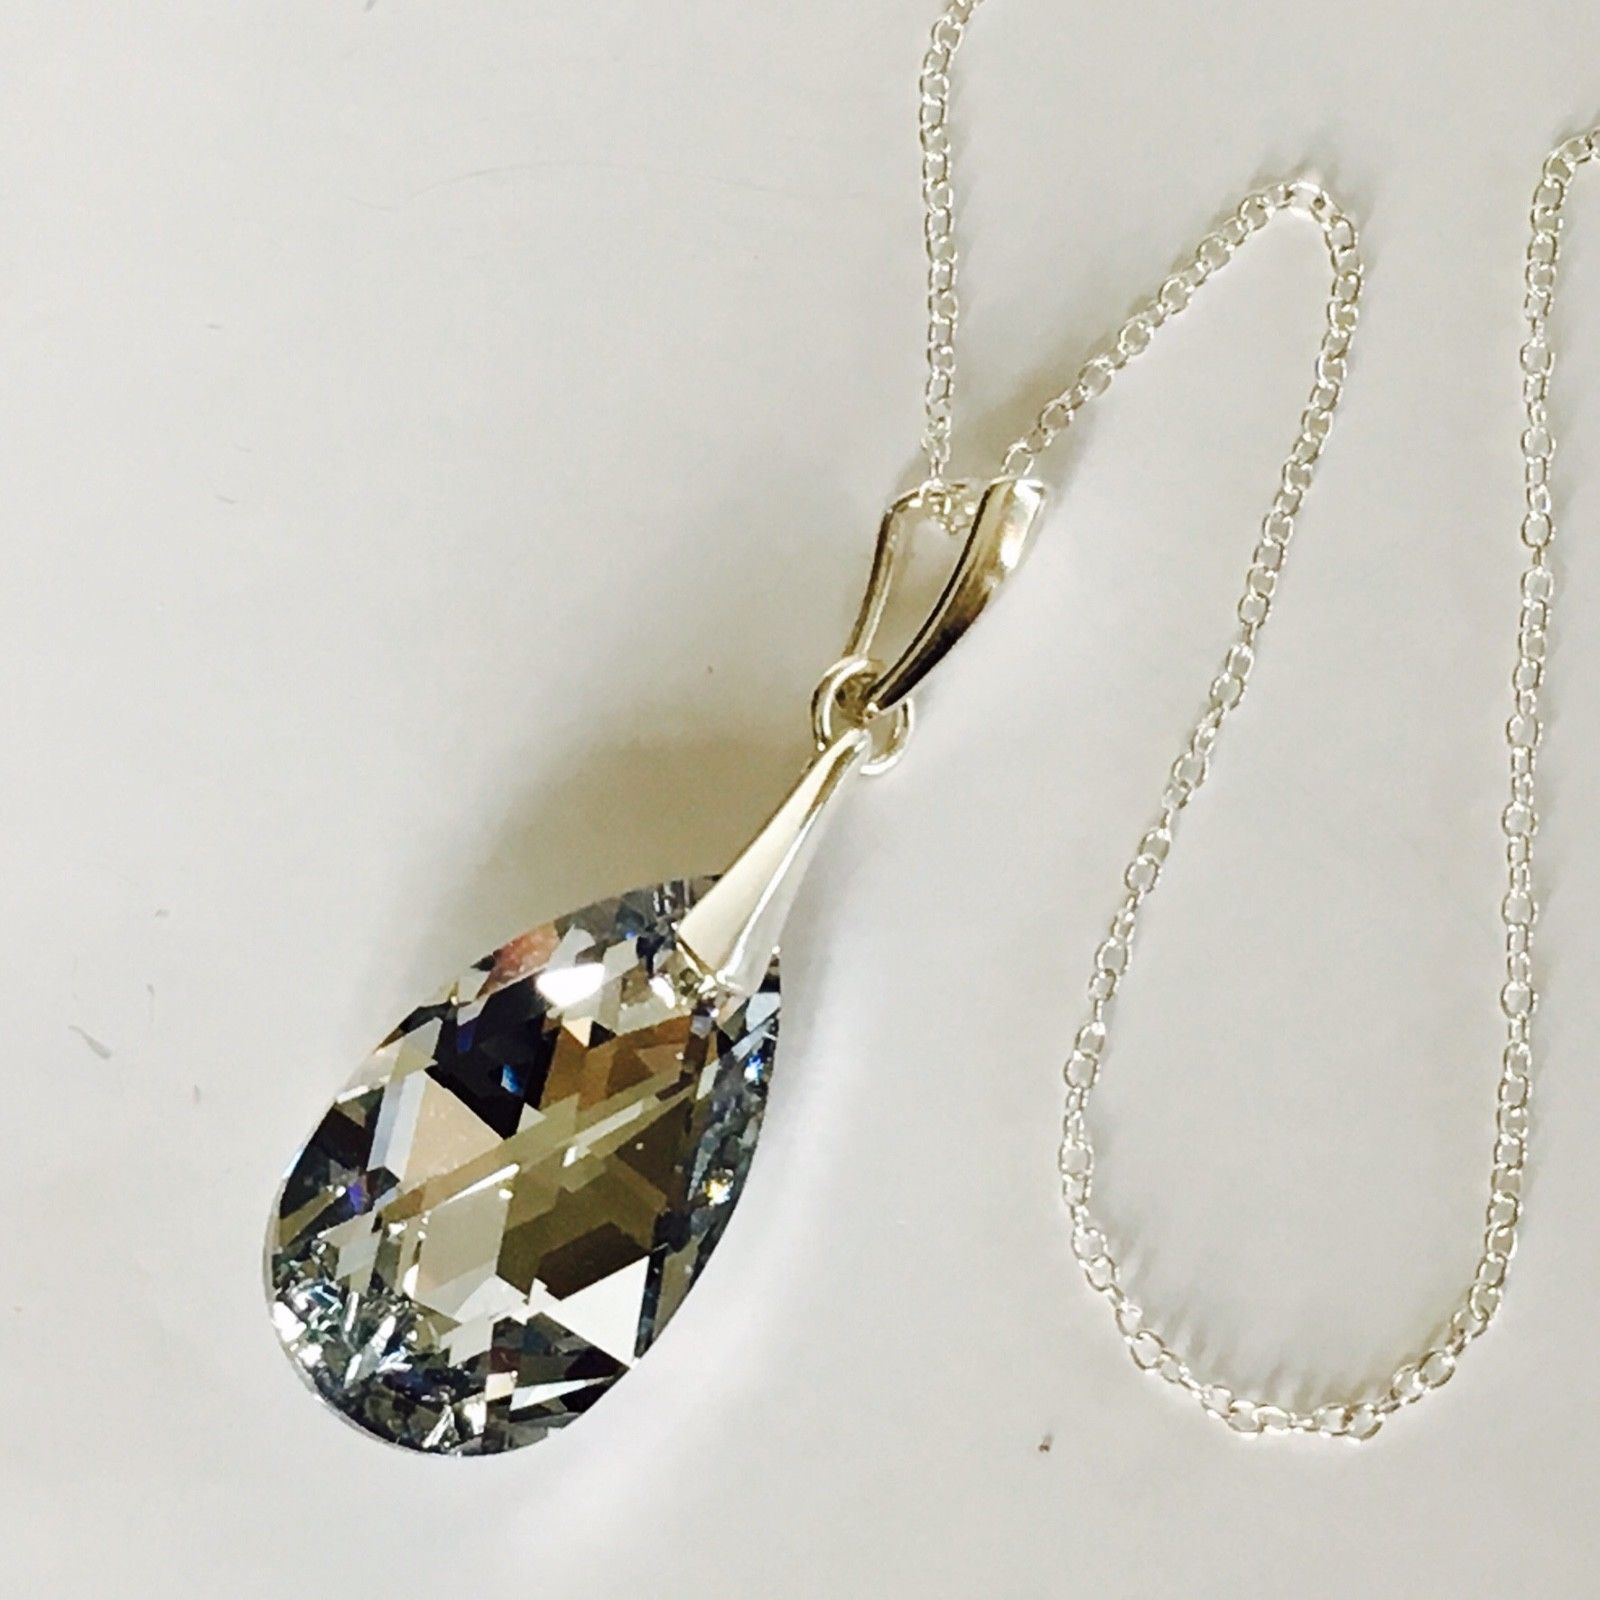 Swarovski Elements Crystal Necklace 22mm Pendant Teardrop Jewellery Comet Argent